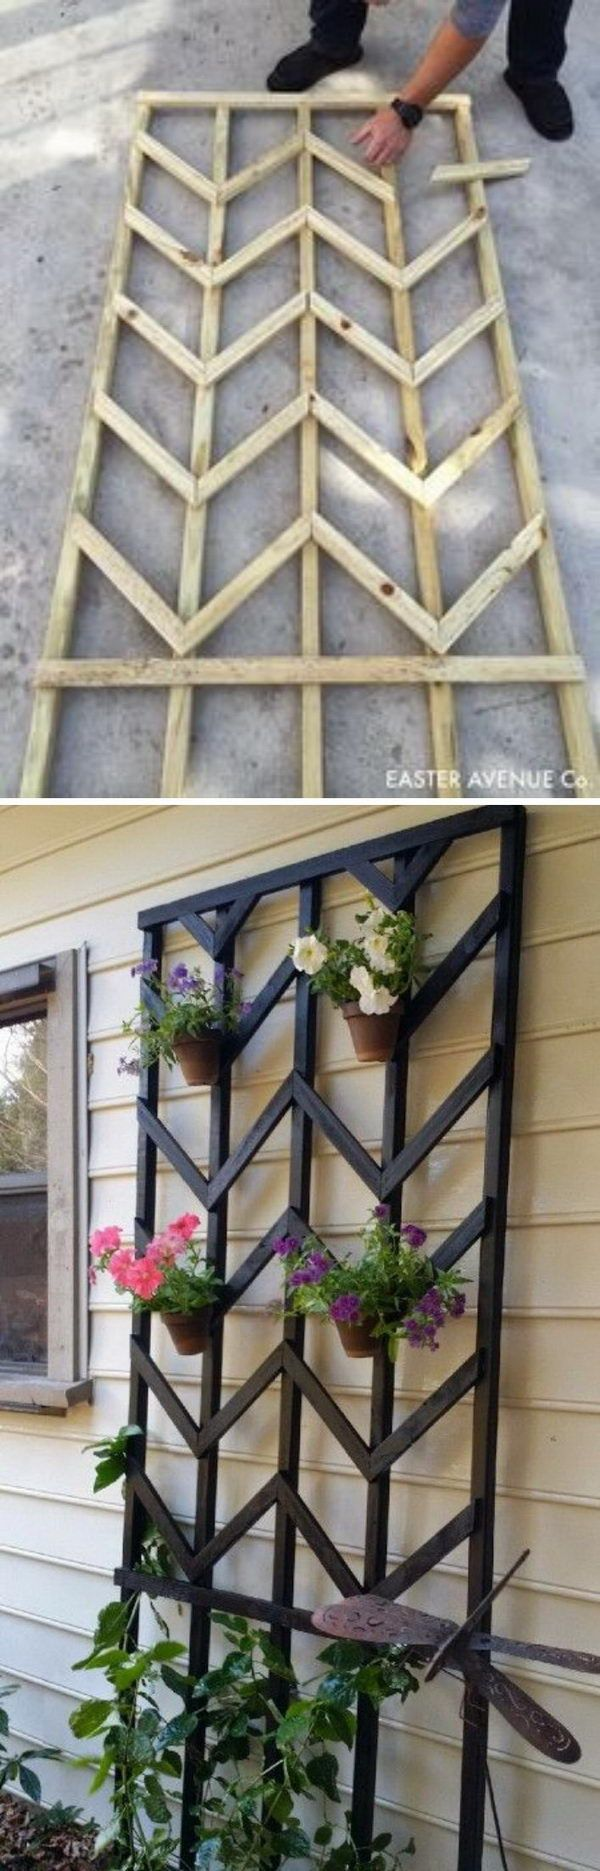 Diy Garden Trellis Ideas Part - 50: 20+ Awesome DIY Garden Trellis Projects